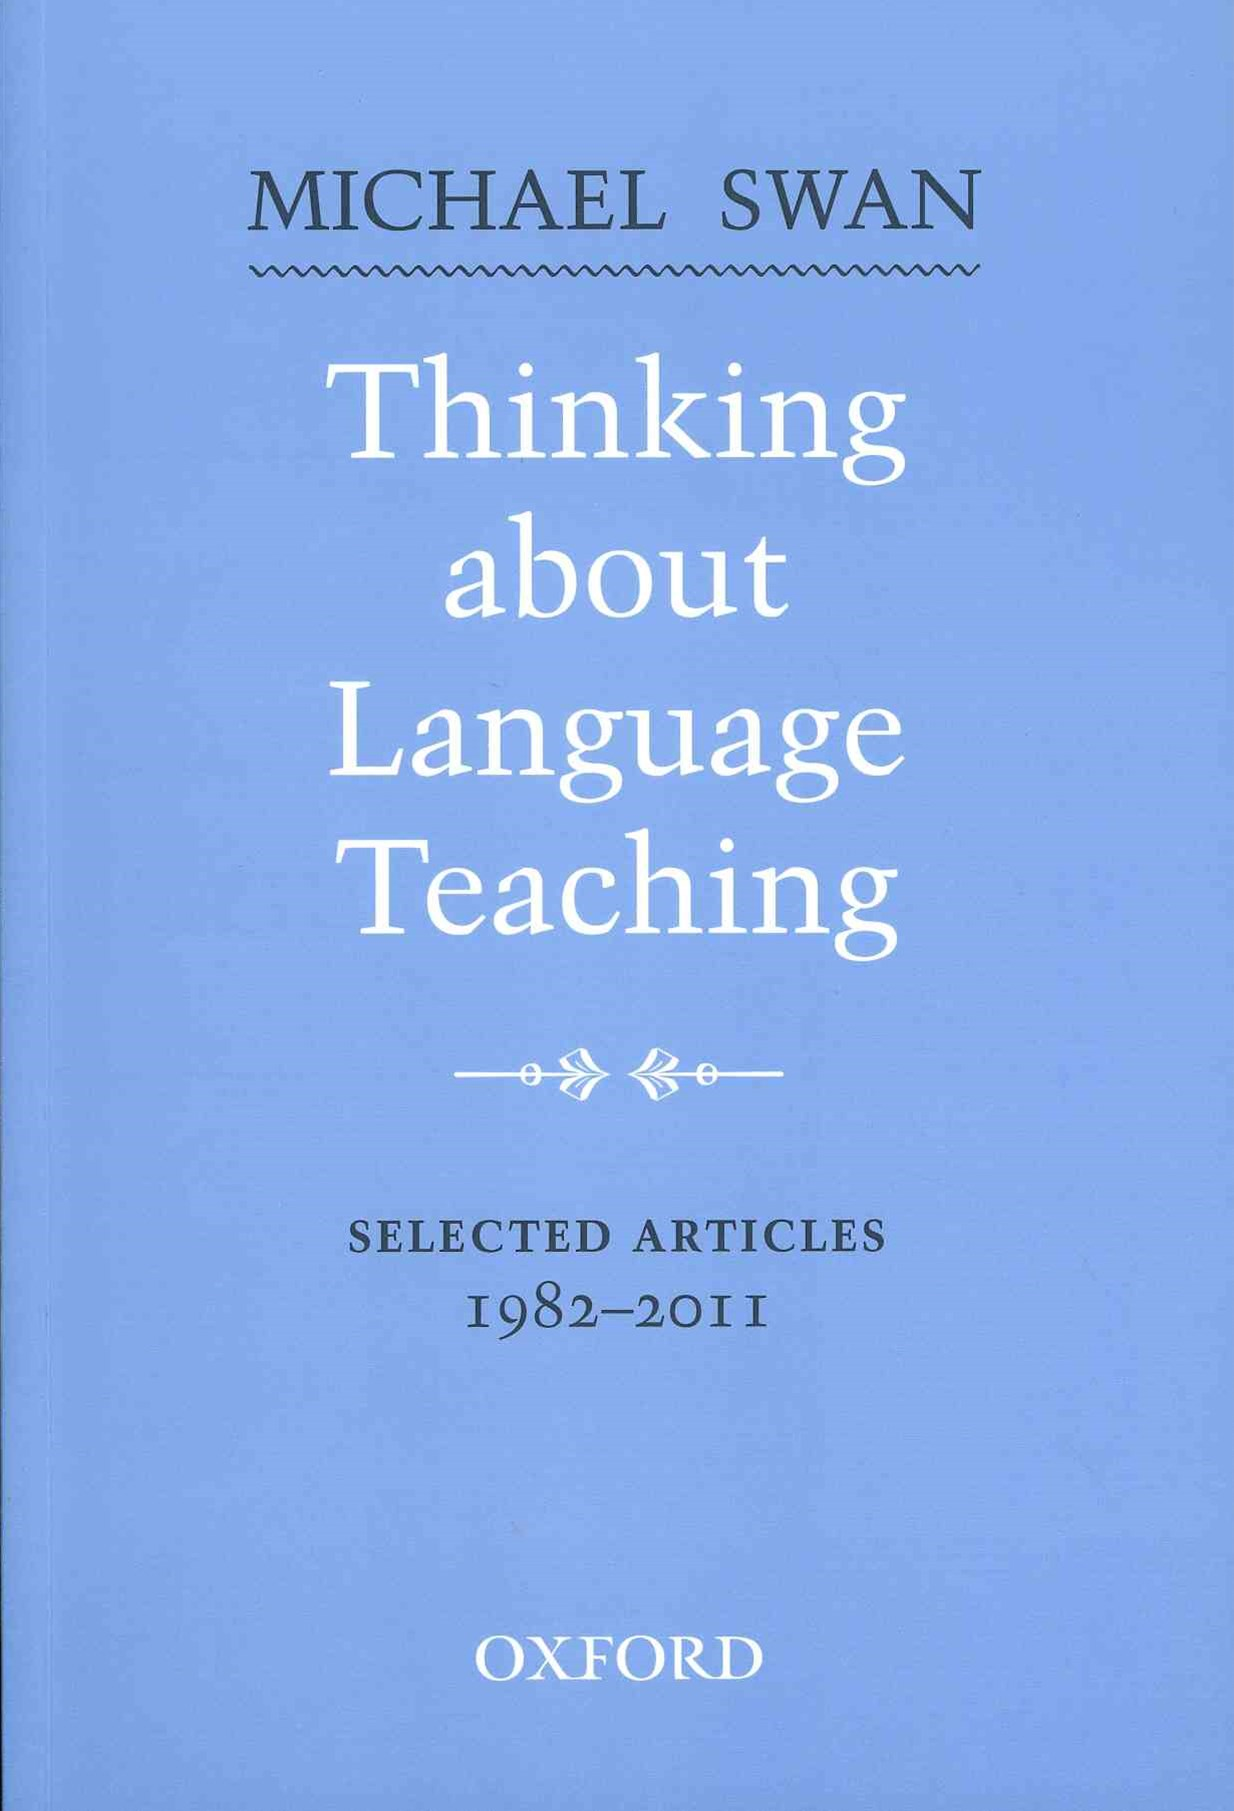 Thinking about Language Teaching